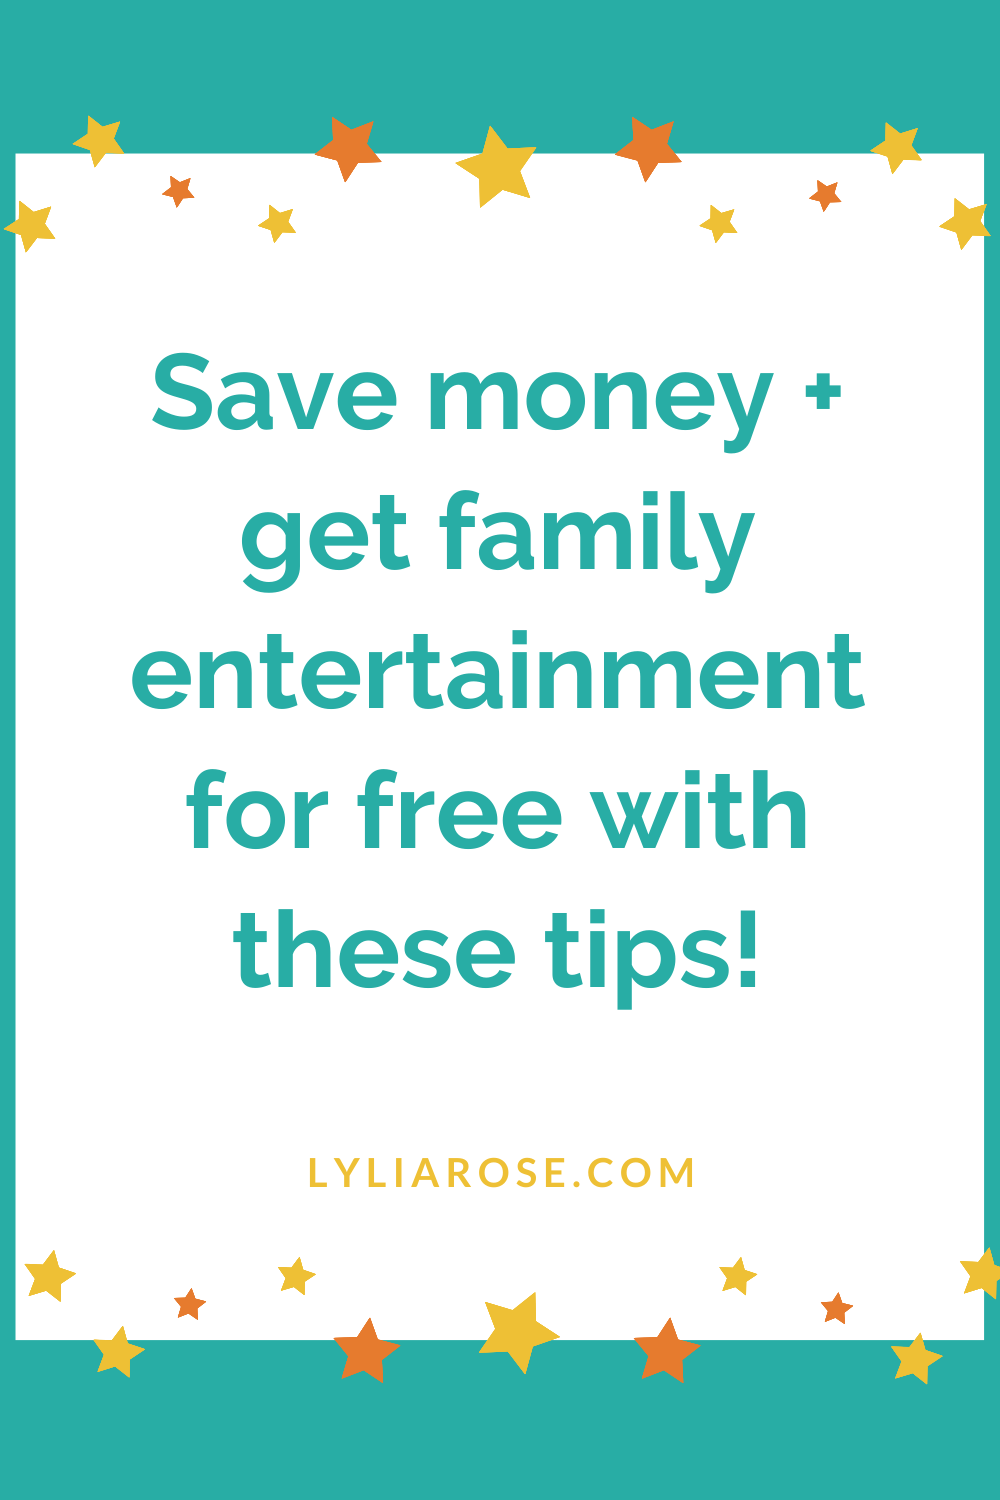 How to save money or get entertainment for free (1)